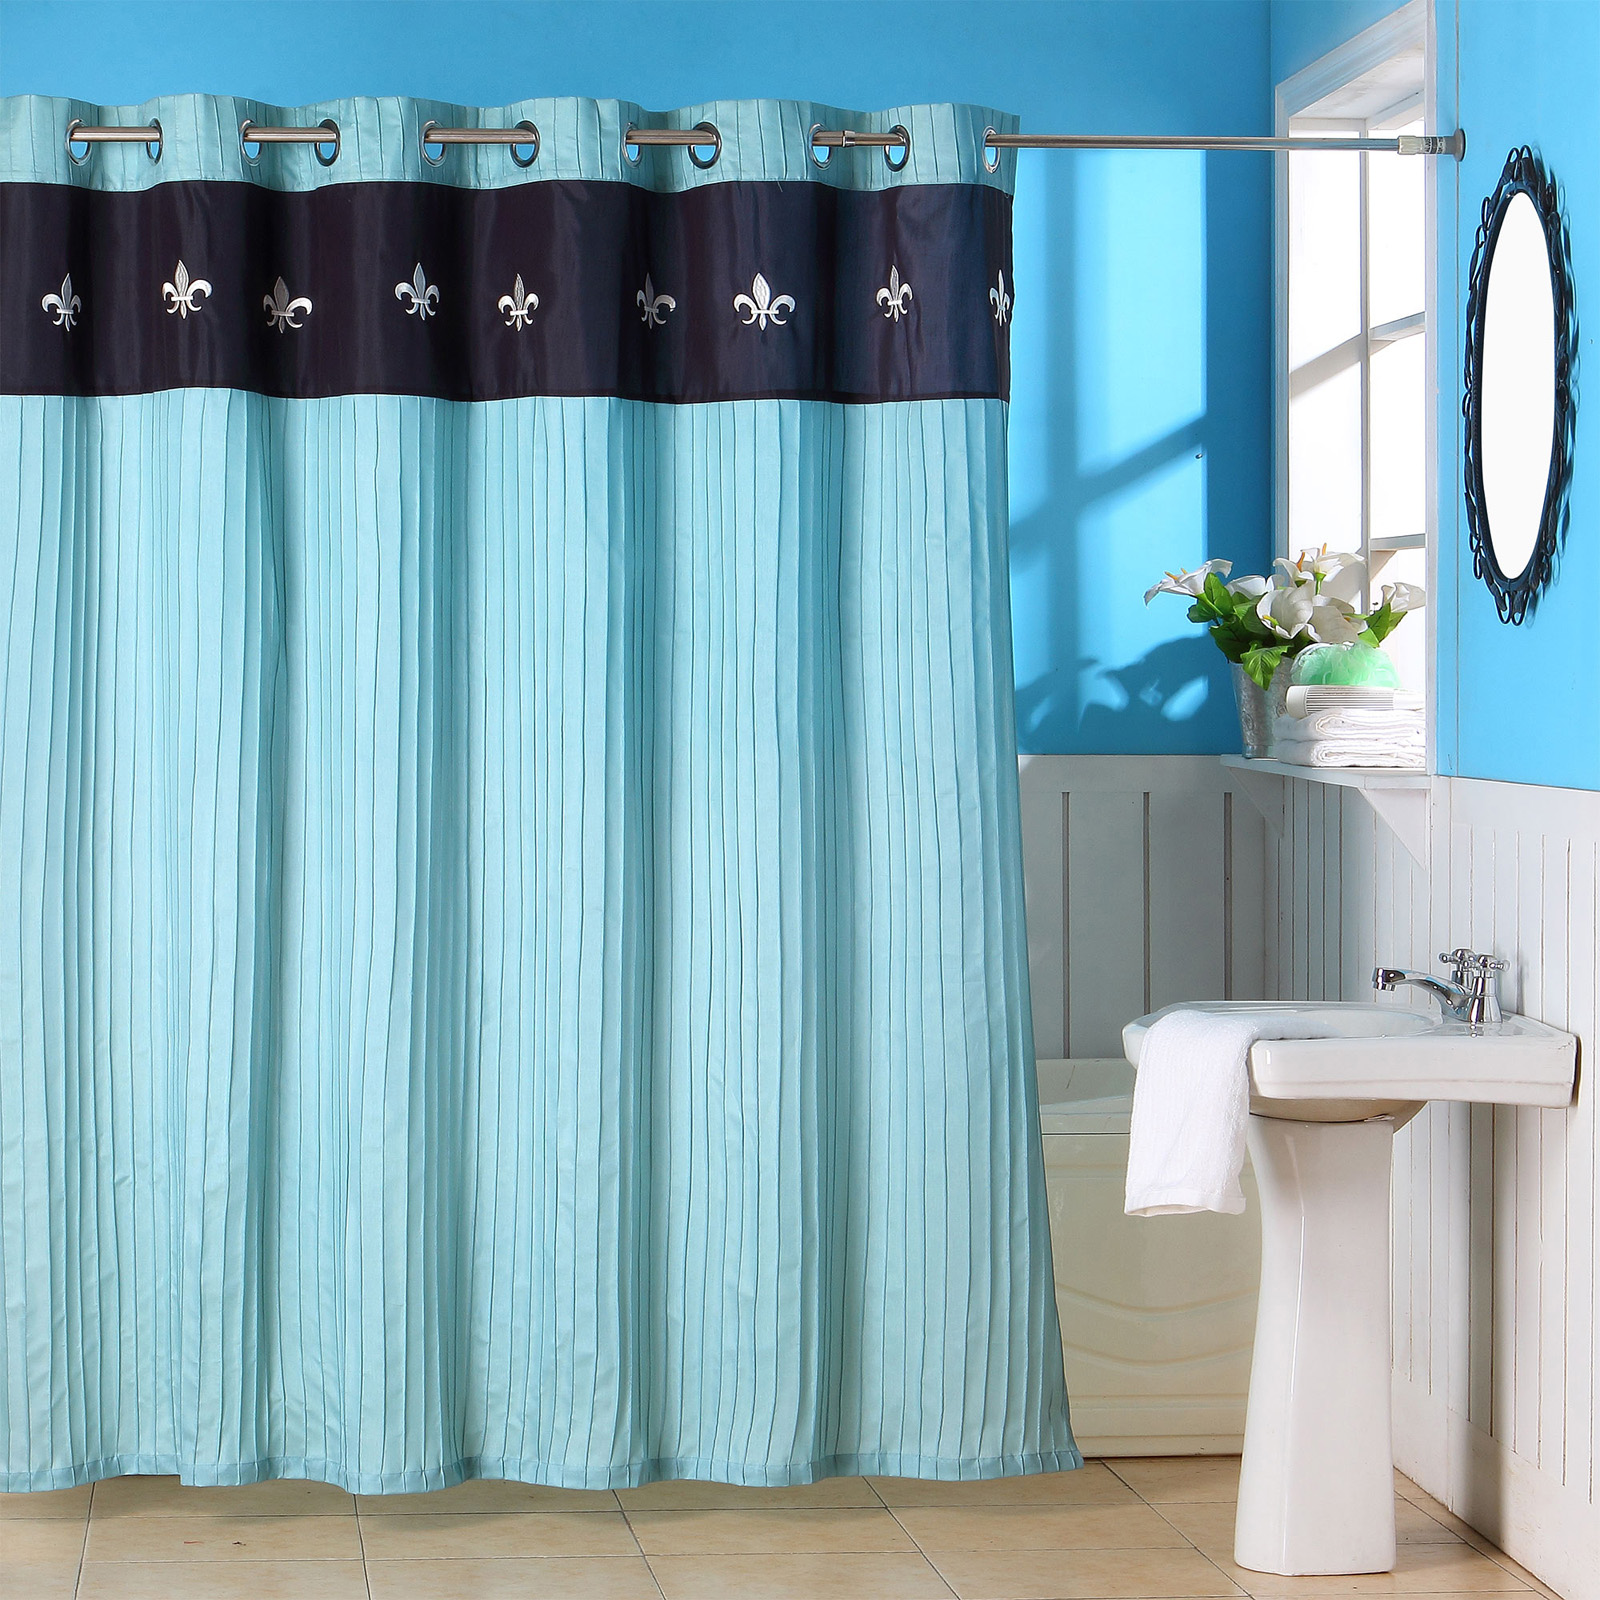 Blue ruffled shower curtains - I Would By It Again